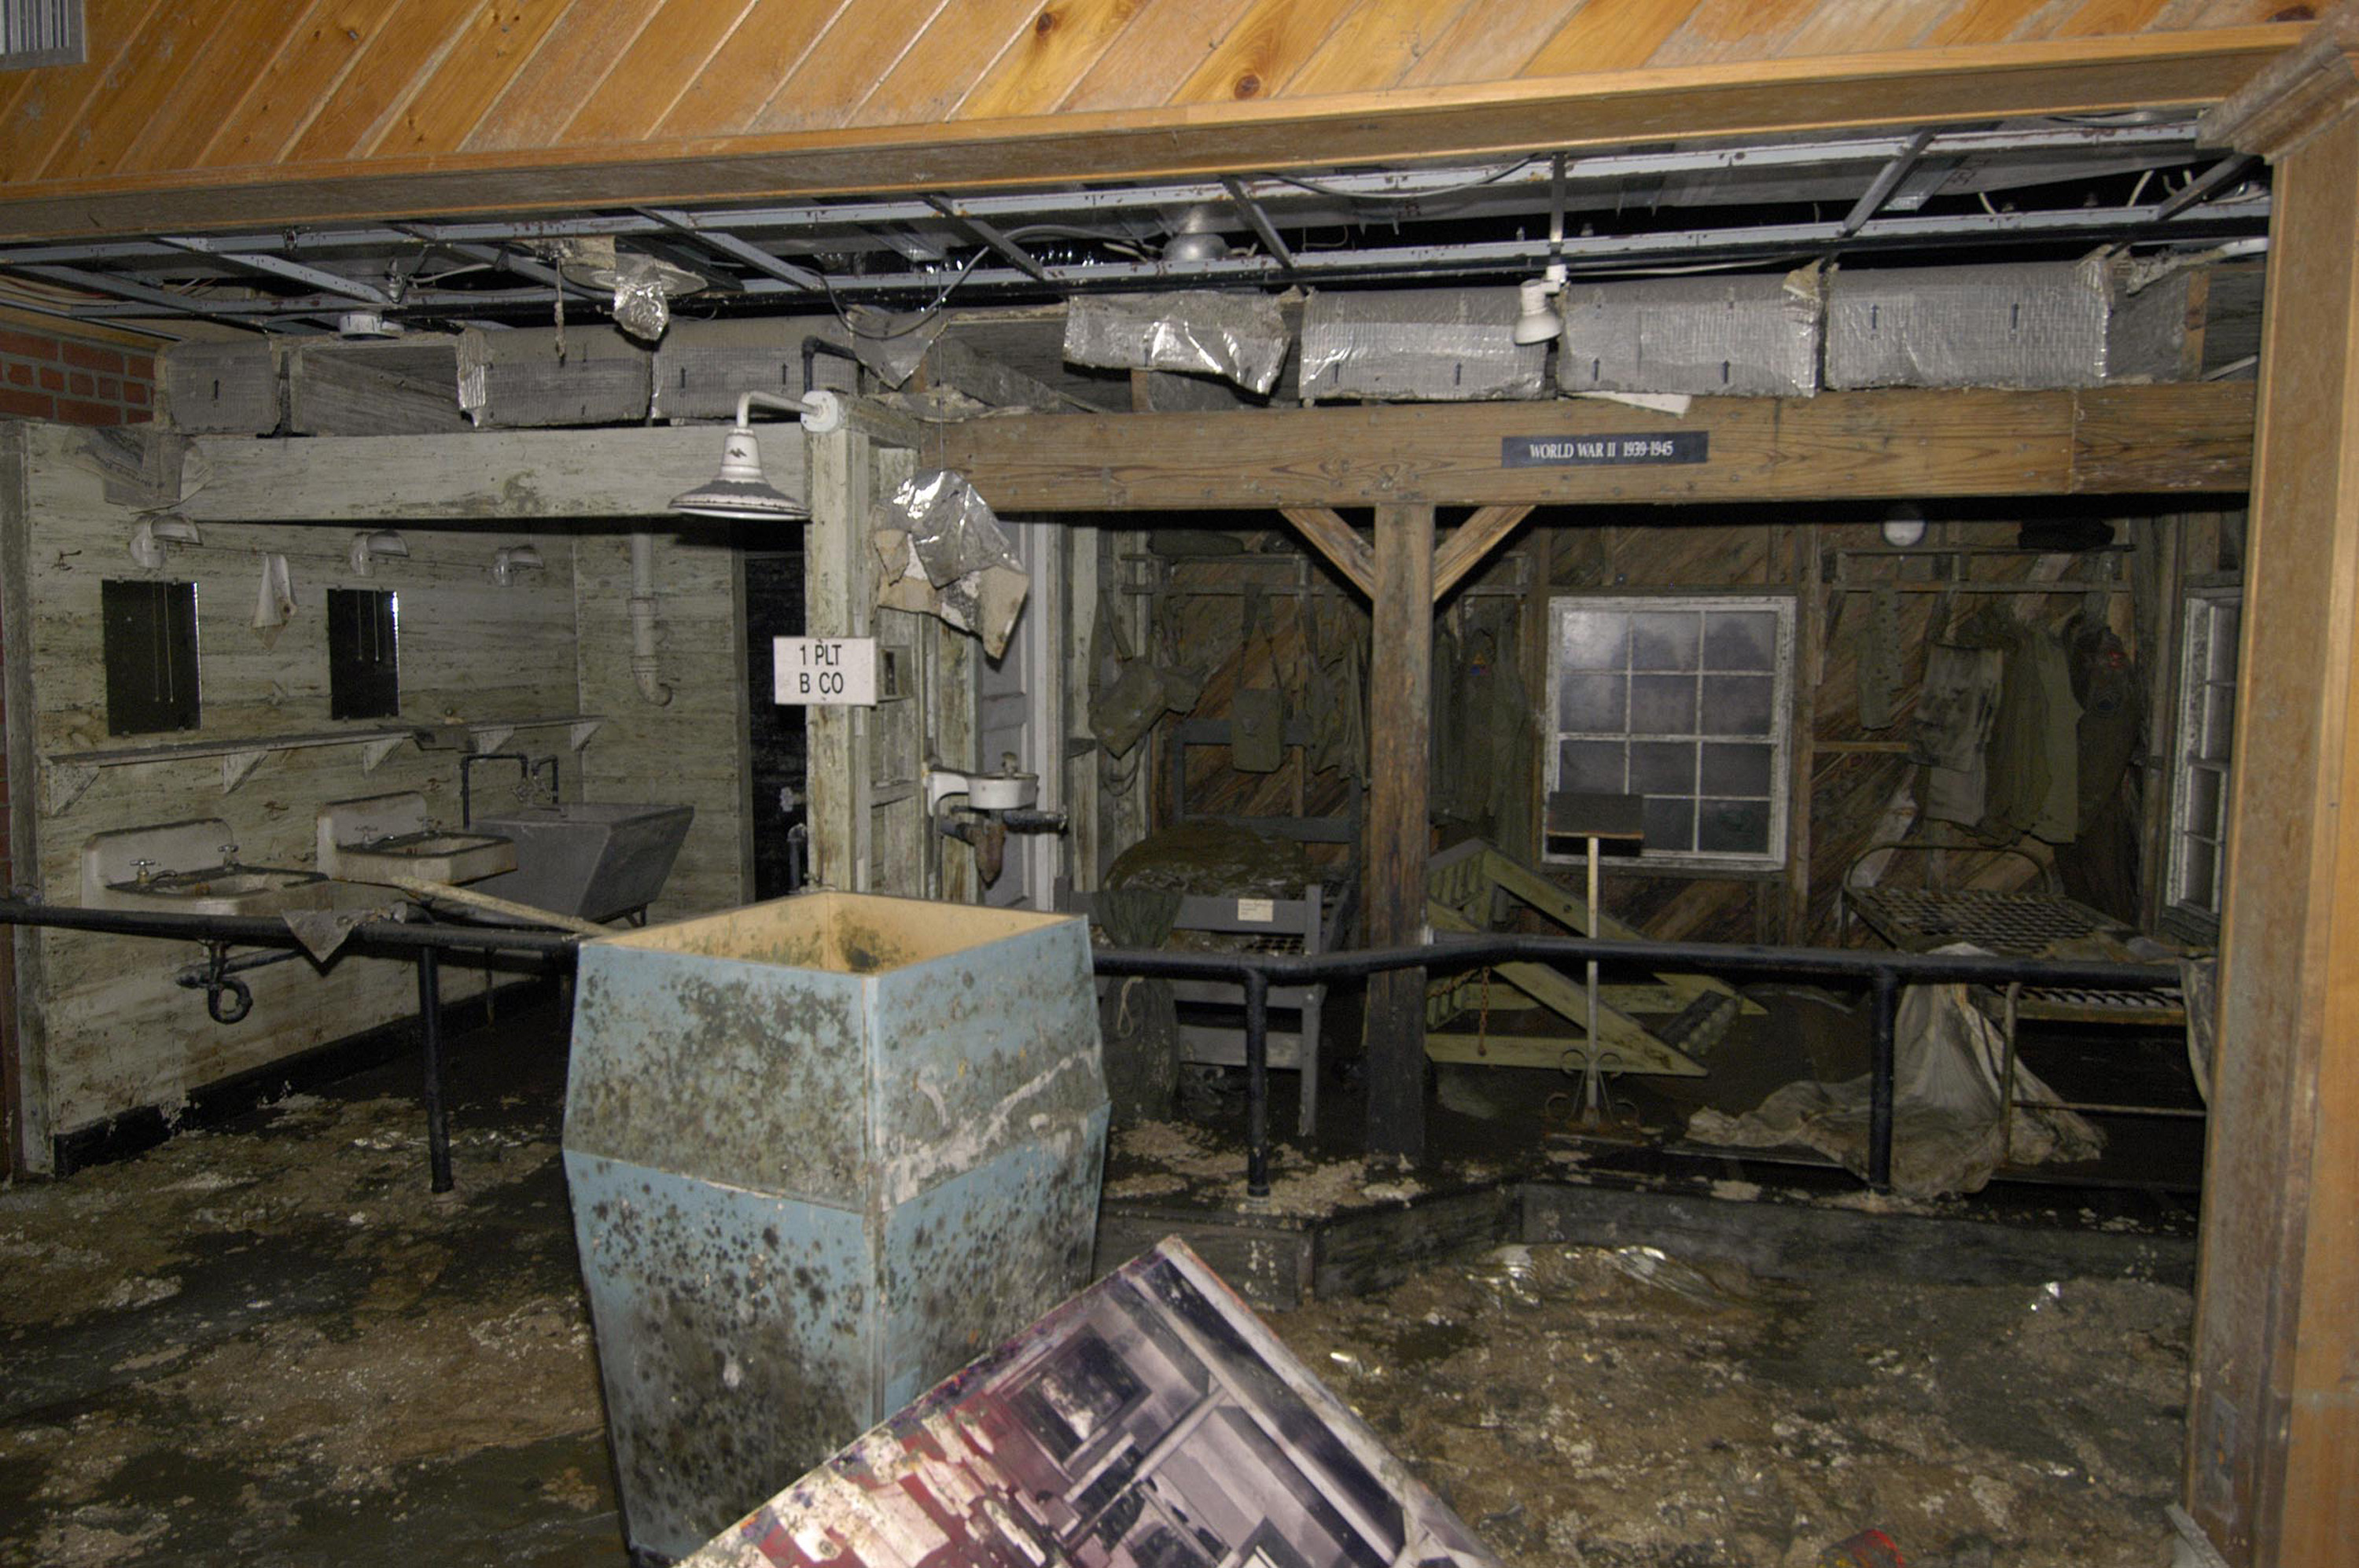 Some of the damage to the barracks done by Hurricane Katrina